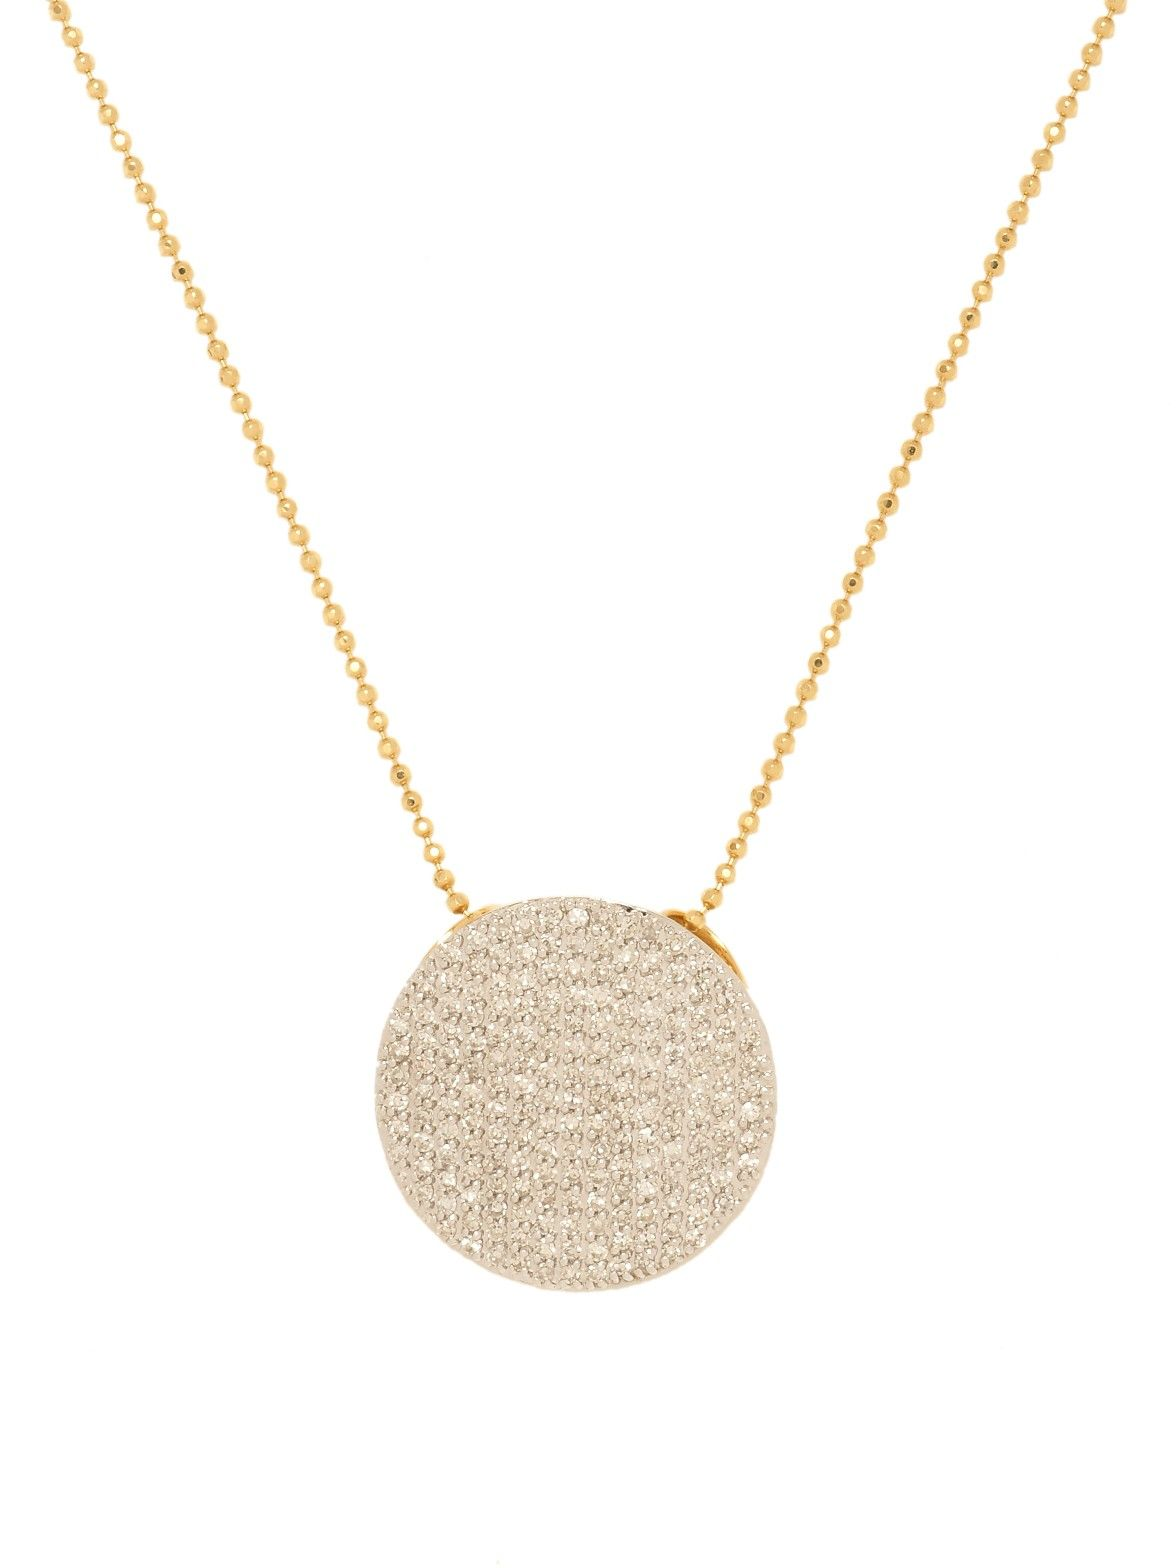 Phillips house 14k yellow gold pave diamond disc pendant necklace at phillips house 14k yellow gold pave diamond disc pendant necklace at london jewelers mozeypictures Choice Image